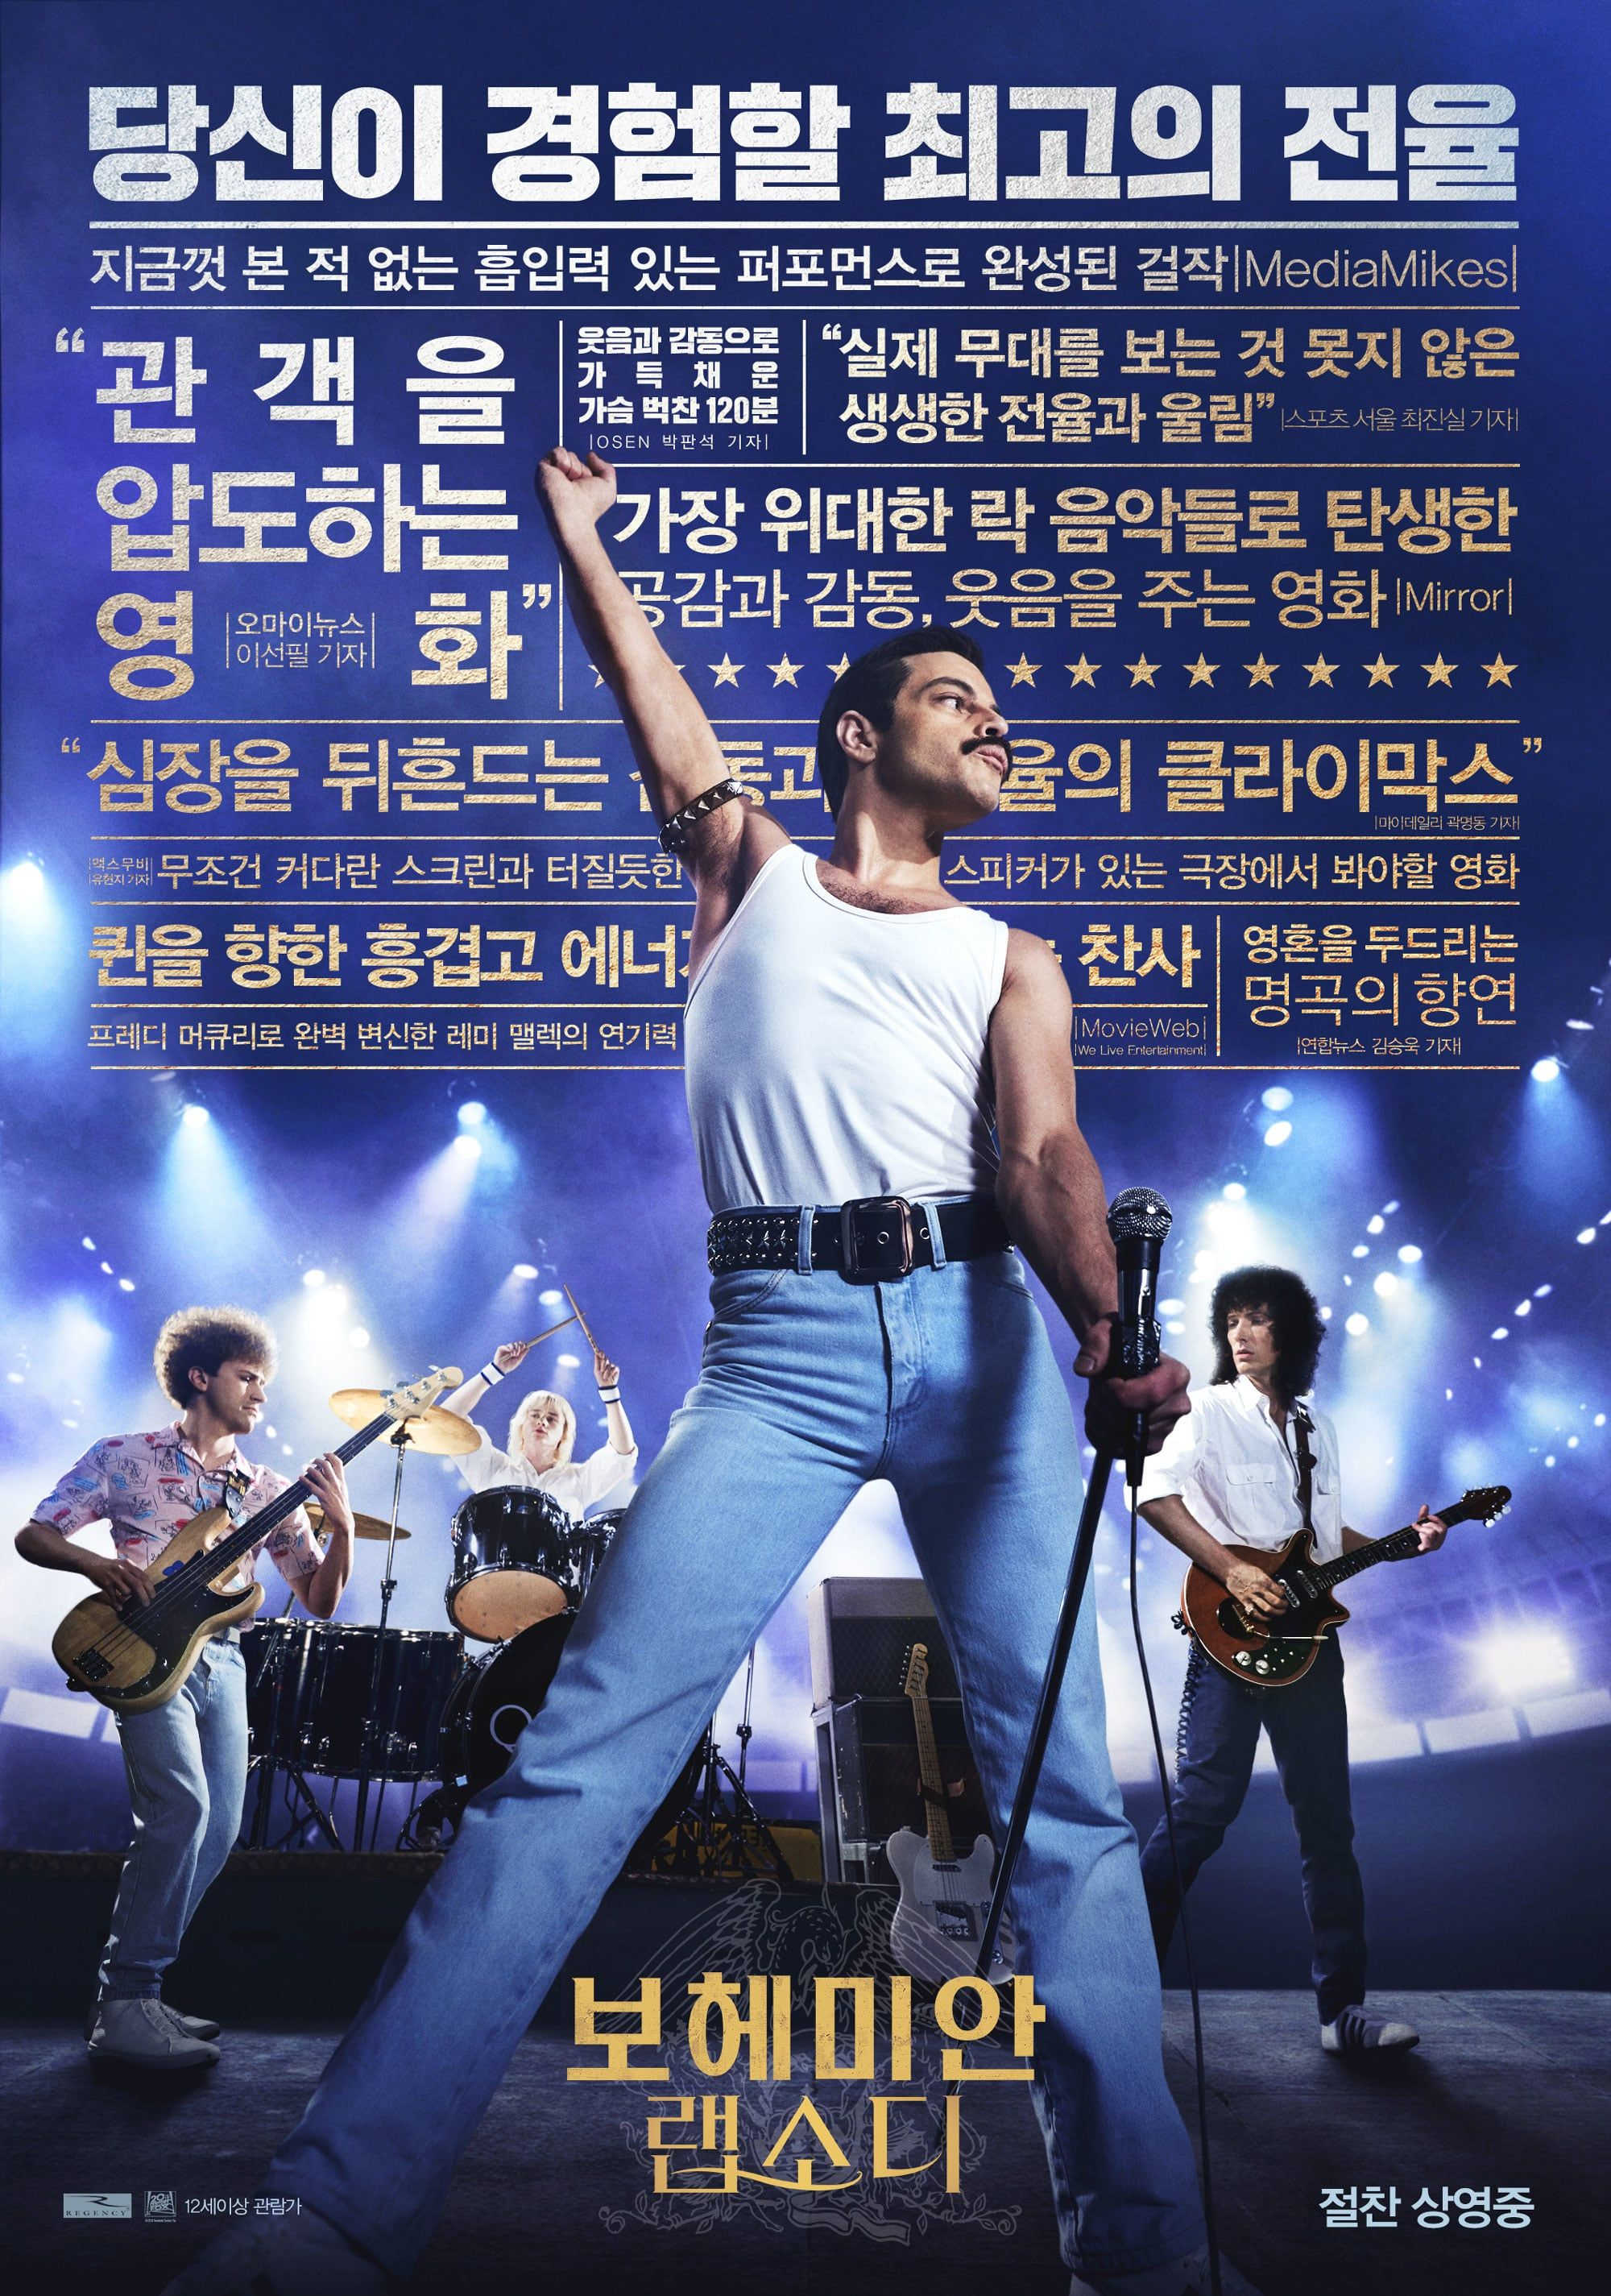 Watch Bohemian Rhapsody Full Movie Hd1080p Sub English